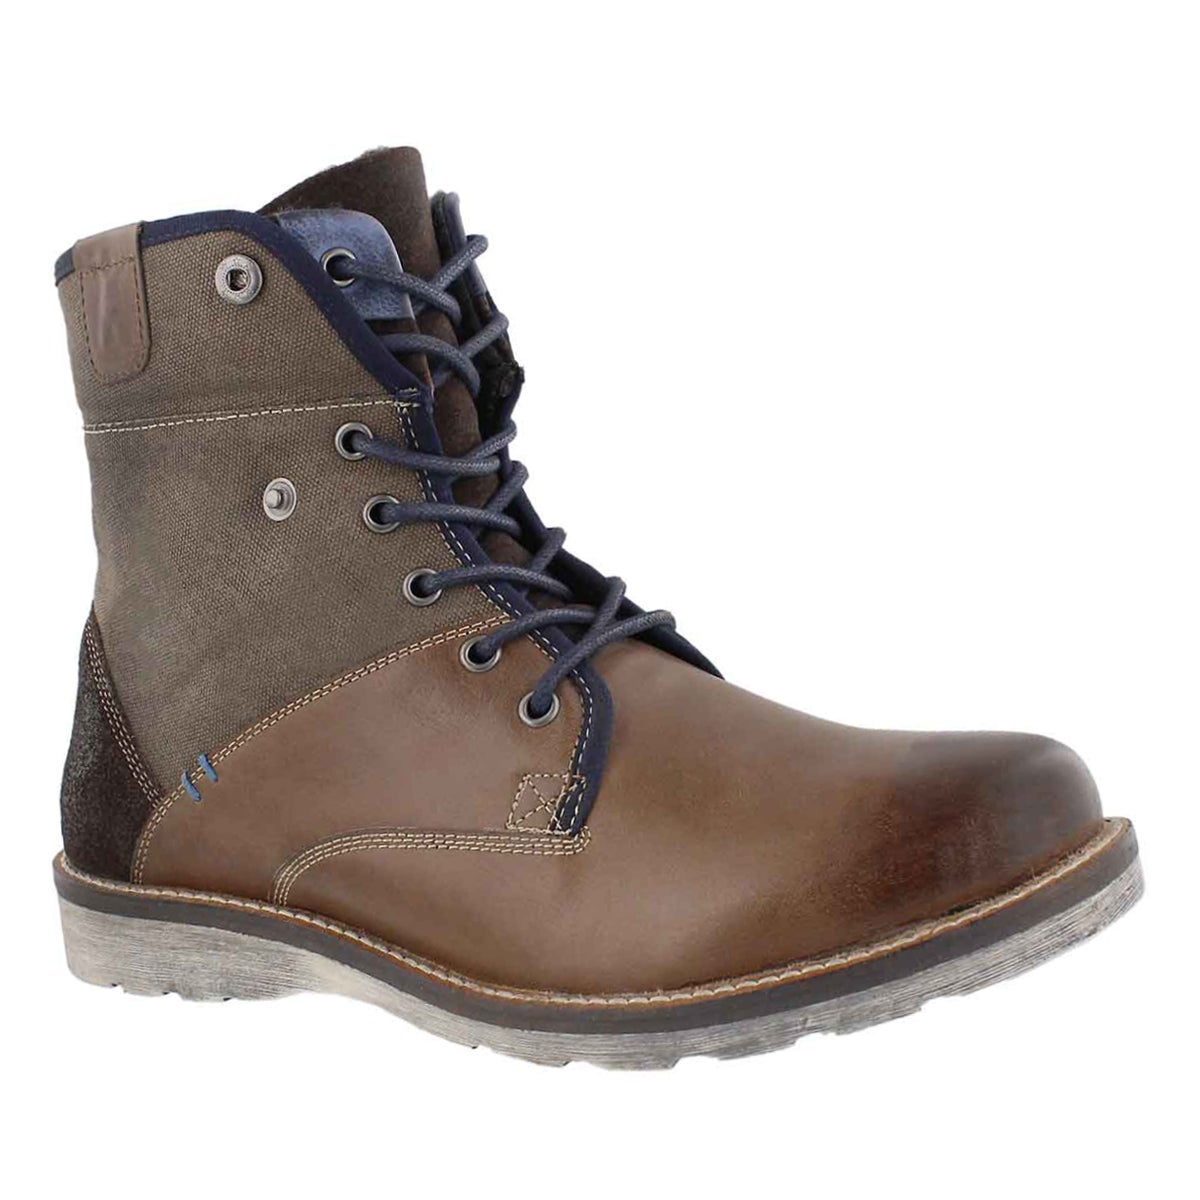 Men's ARCO brown lace up ankle boots